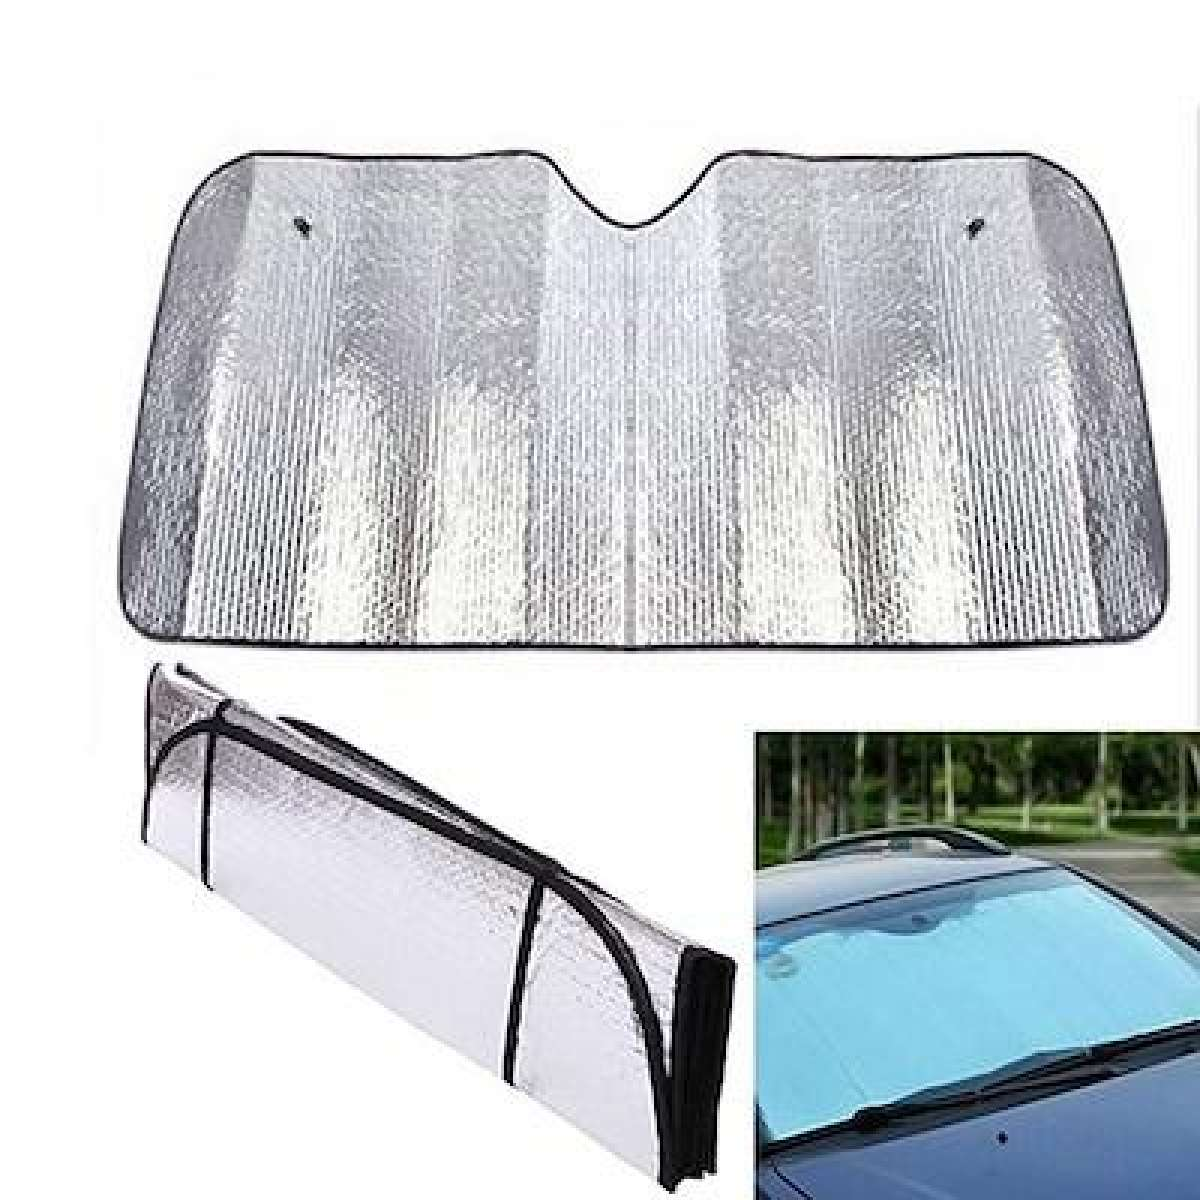 SUN SHADE ALUMINIUM FOIL TYPE FOR CAR WINDSHIELD (UNIVERSAL)